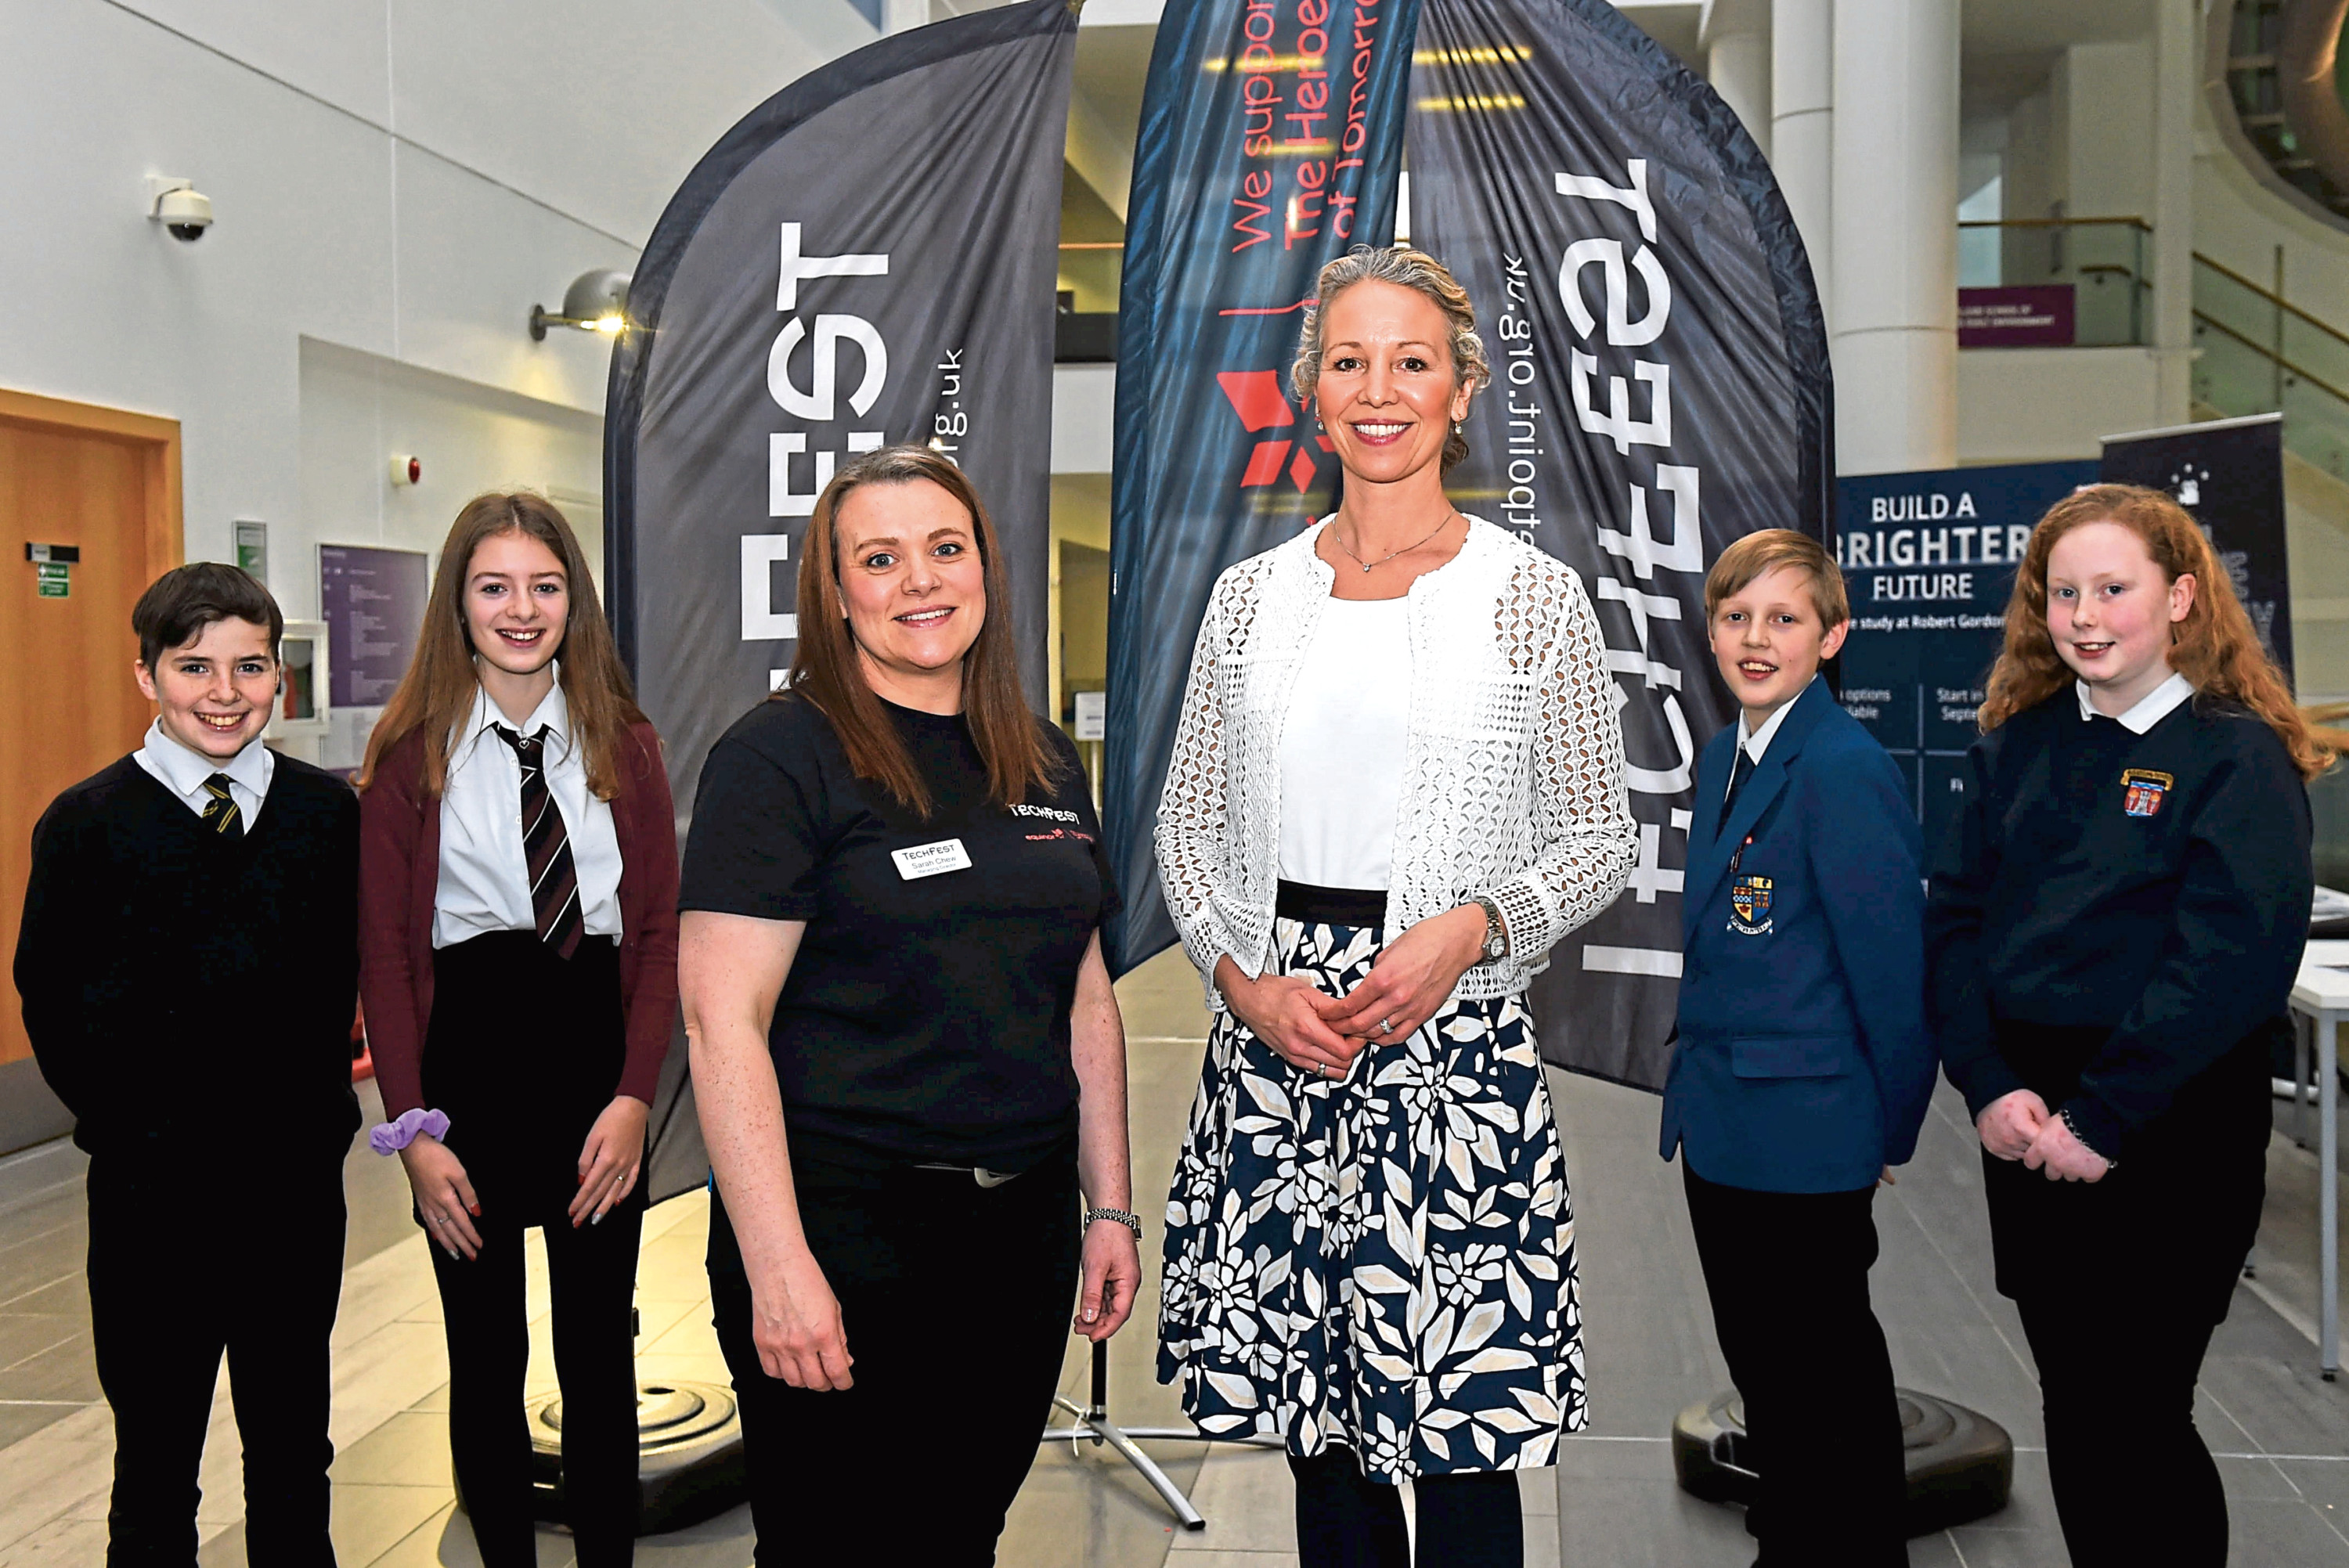 Ollie Croft from Keith Grammer School, Caitlin Bertram from Banchory Academy, Managing director of TechFest, Sarah Chew, Hedda Felin, senior vice president, UK and Ireland Offshore, Equinor, Kyle McIntosh from Inverurie Academy and Naomi Will from Hazlehead Academy